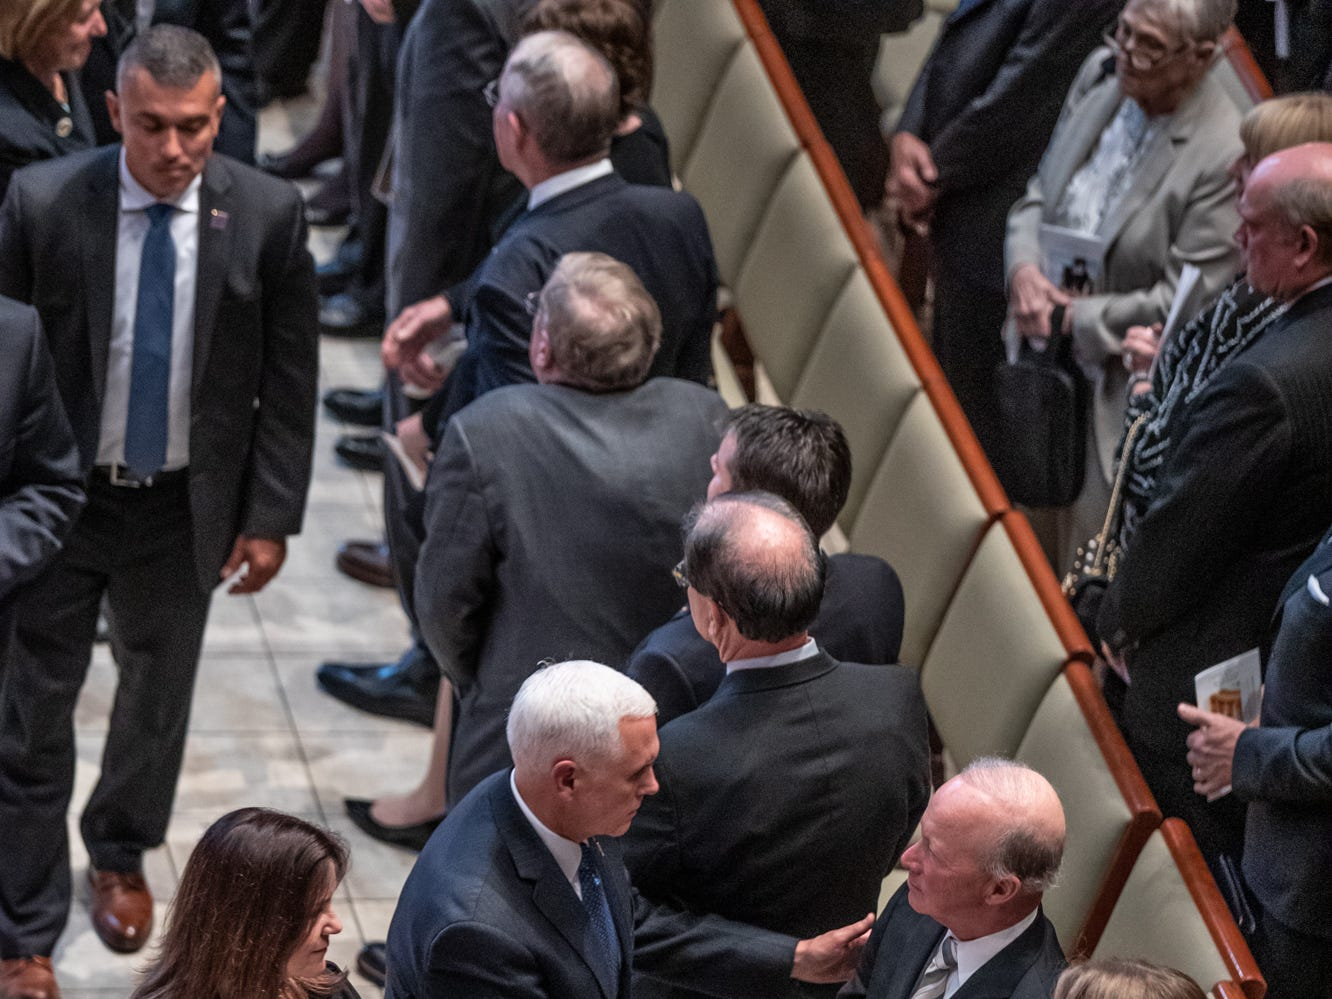 Vice President Mike Pence, shakes hands with former Indiana Gov/ Mitch Daniels after a memorial service for former U.S. Sen. Richard Lugar, during a memorial service held at Saint Luke's United Methodist Church in Indianapolis, on Wednesday, May 15, 2019. Lugar served as mayor of Indianapolis from 1968 to 1975 and U.S. senator from 1977 to 2013. He died April 28, 2019, at the age of 87.